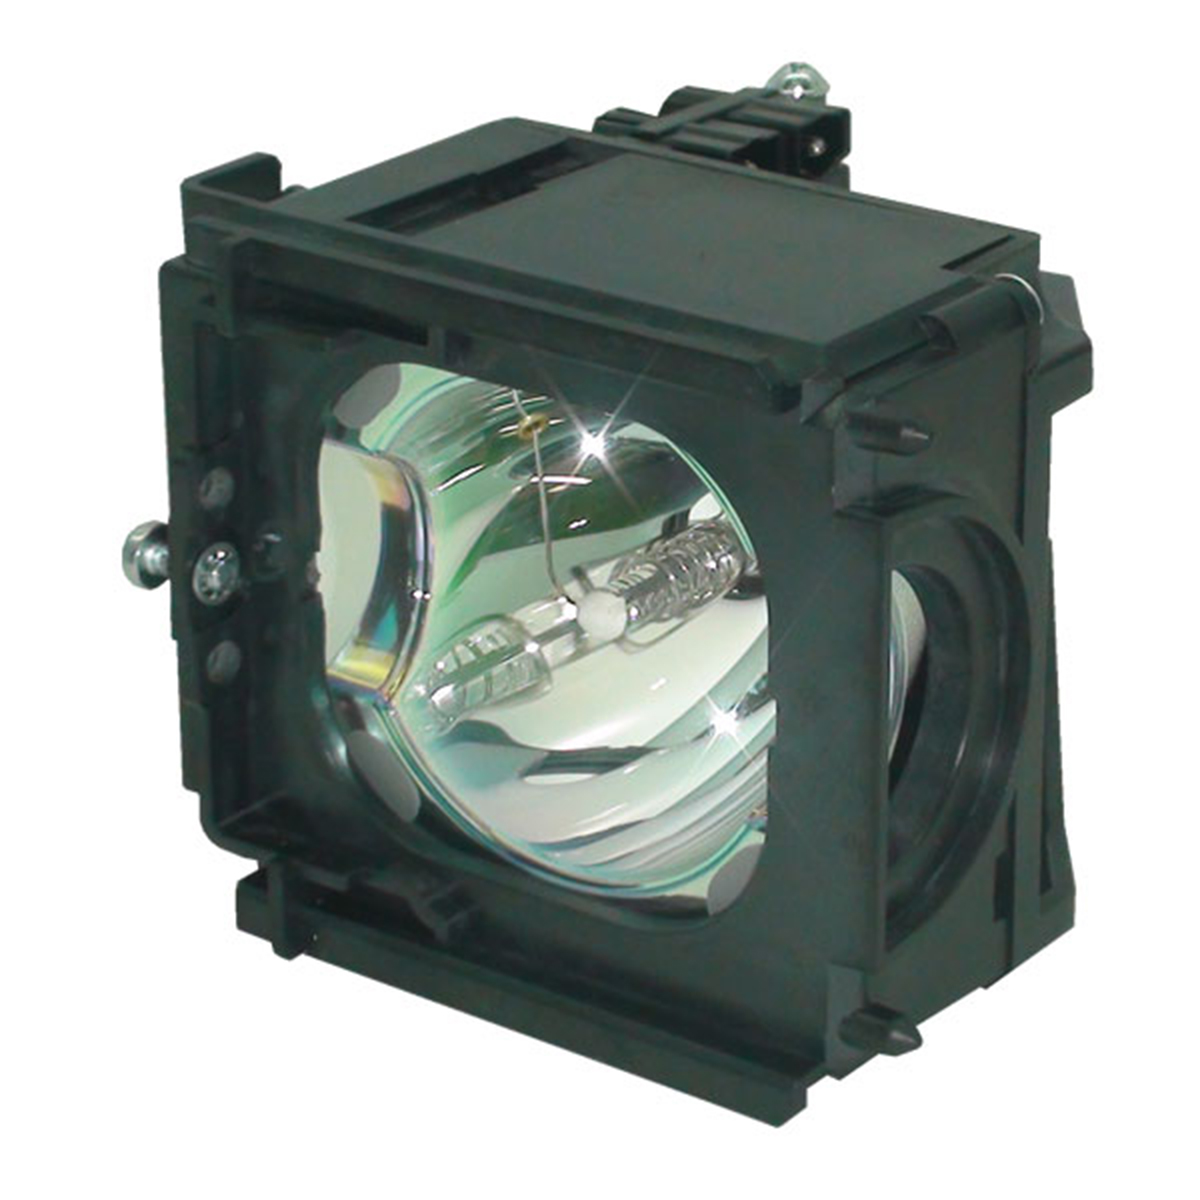 Akai BP96-01472A TV Lamp